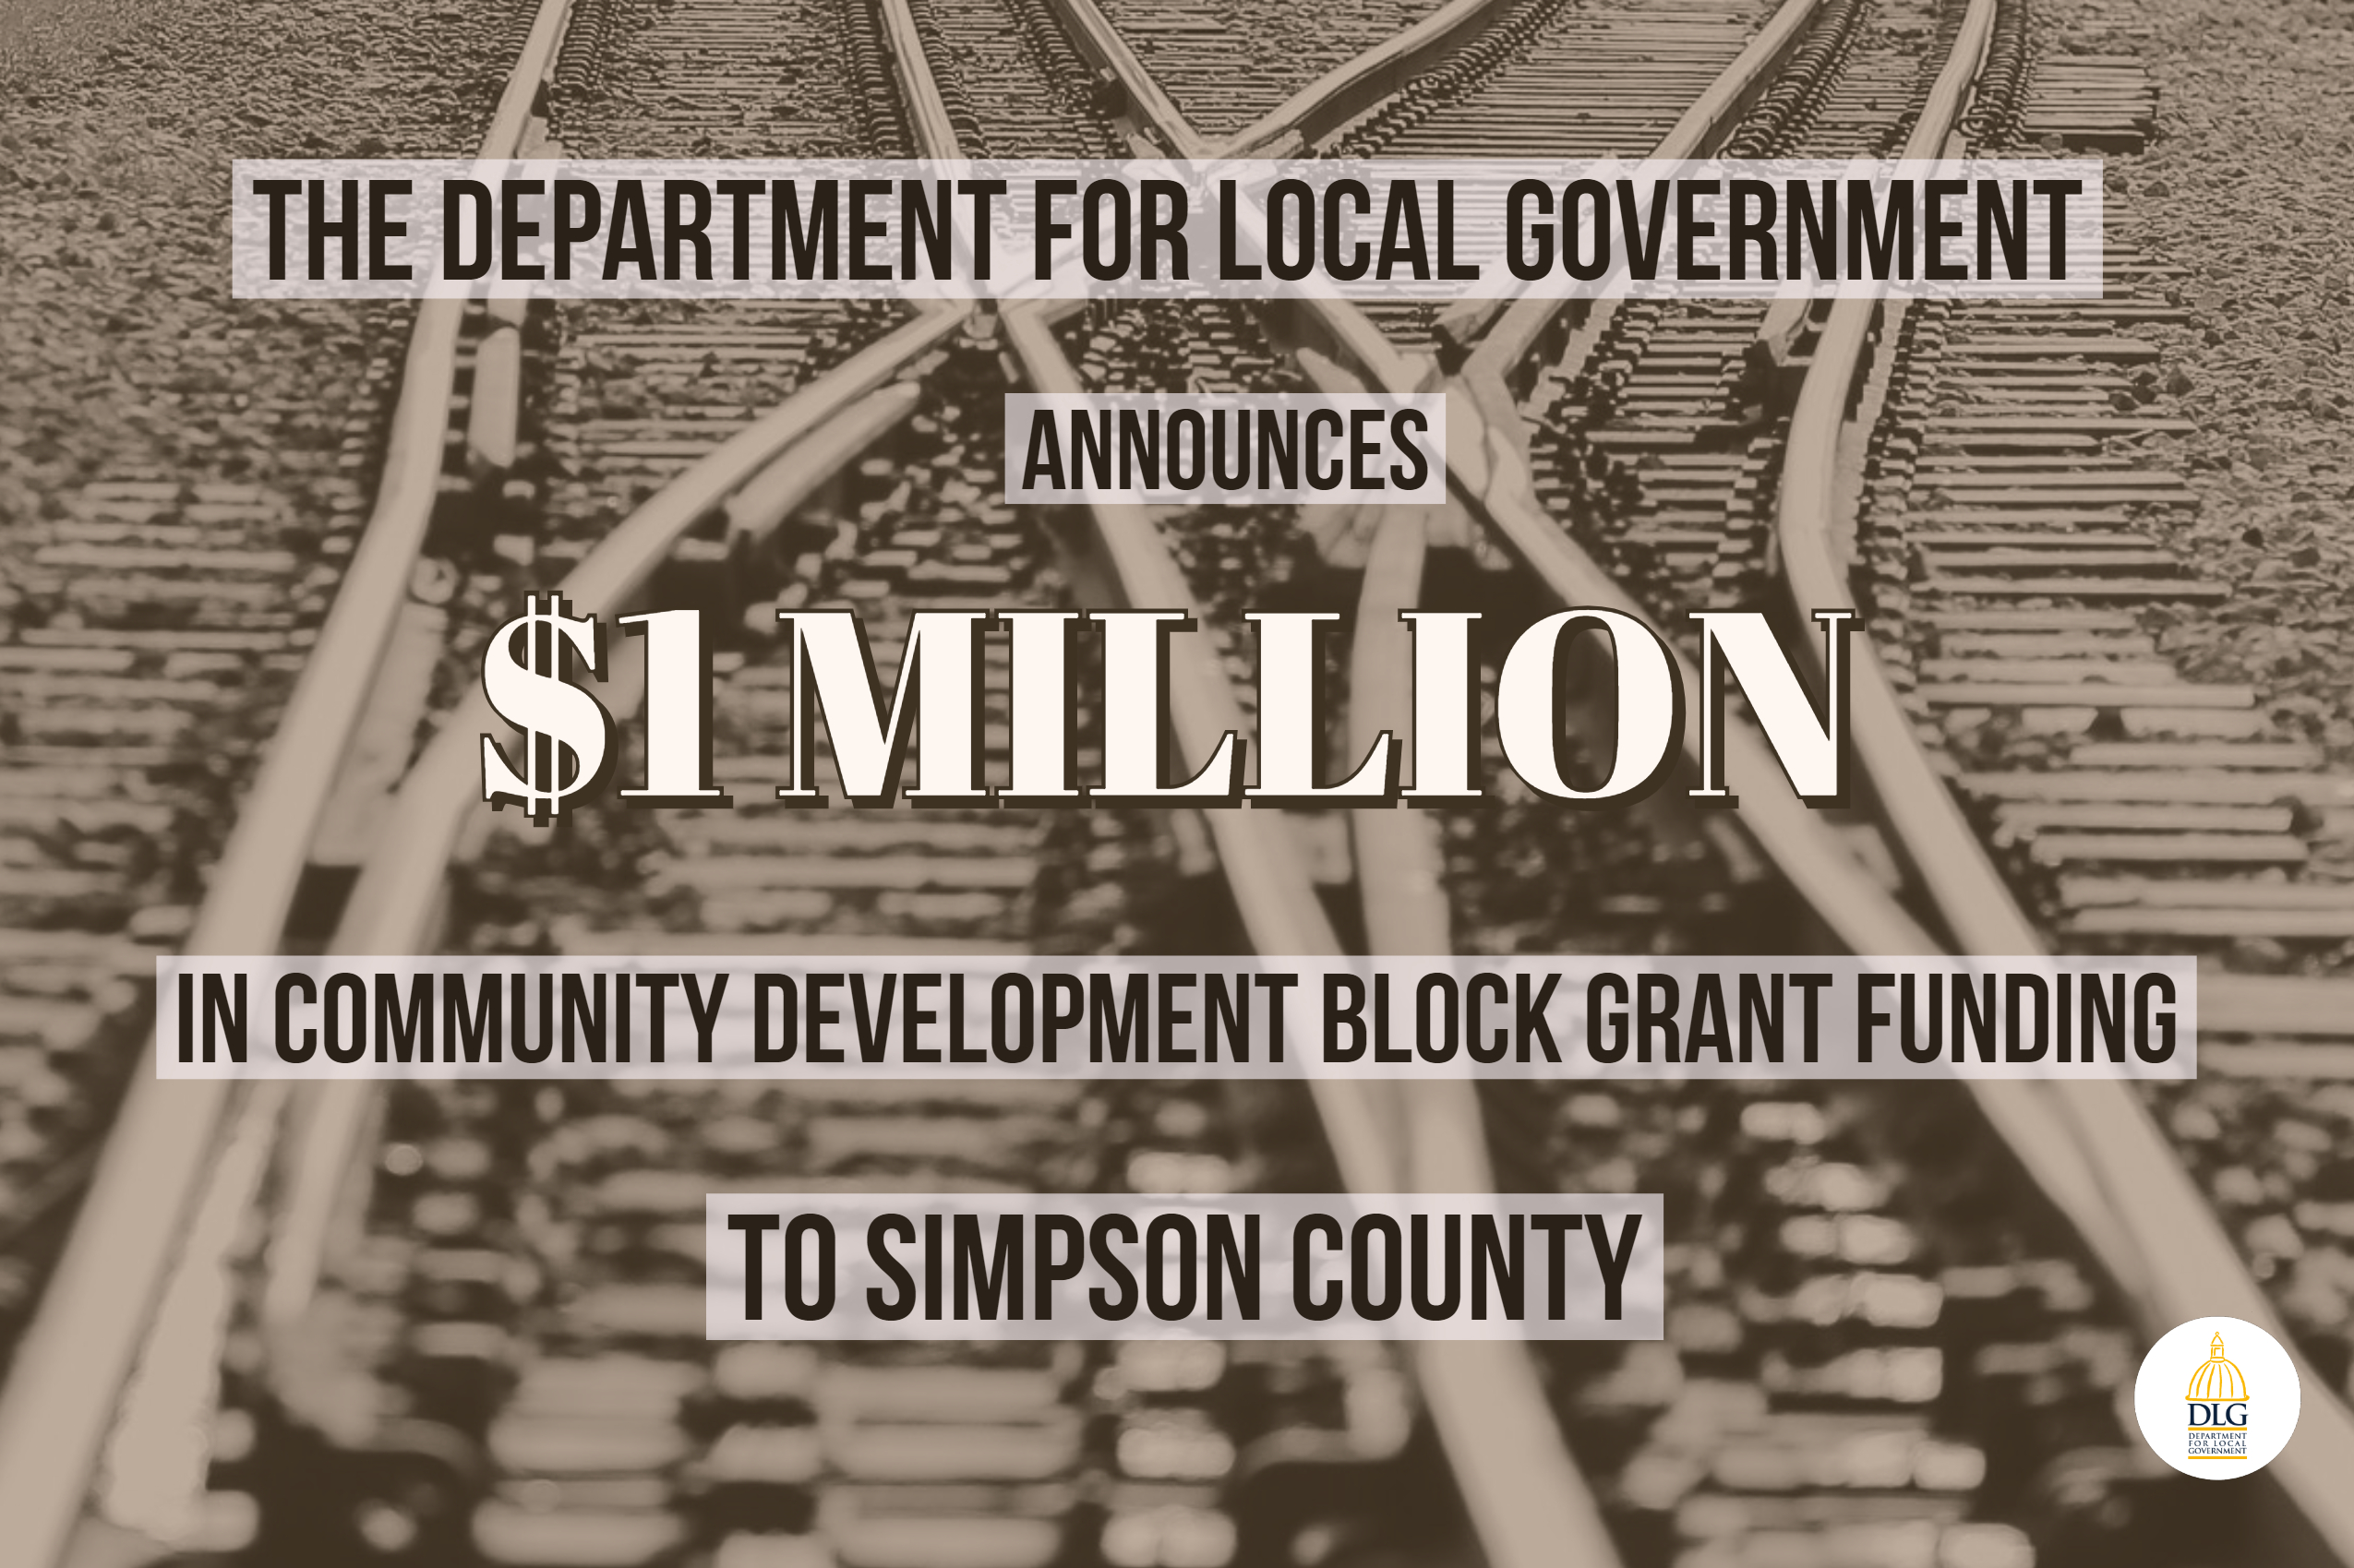 Simpson County Receives $1M Community Development Block Grant